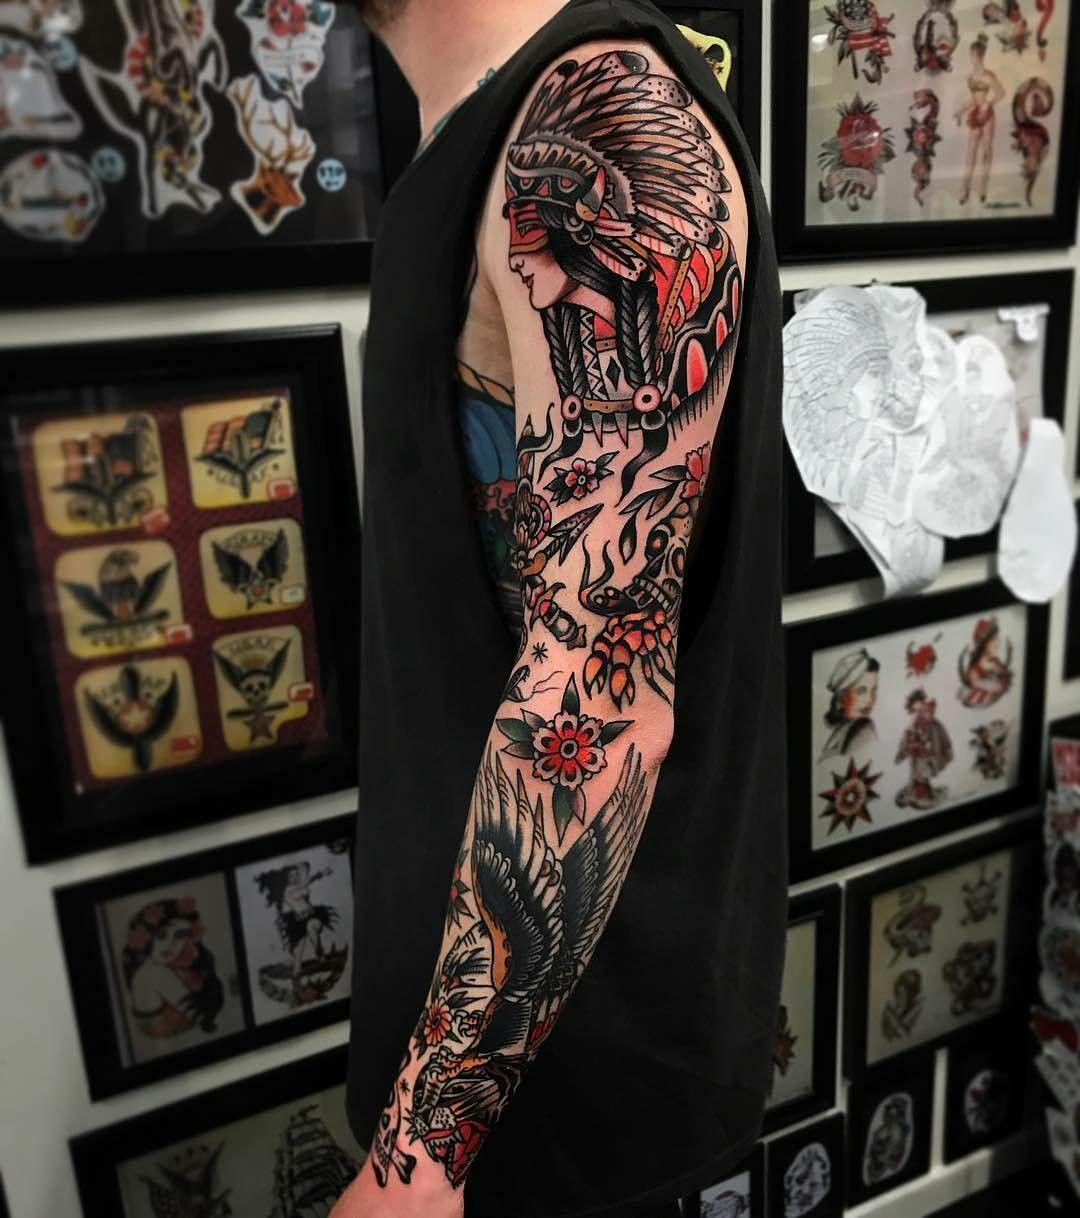 Pin By Serena Ponce On Tattoo S Traditional Tattoo Sleeve Traditional Tattoo Man Old School Tattoo Sleeve